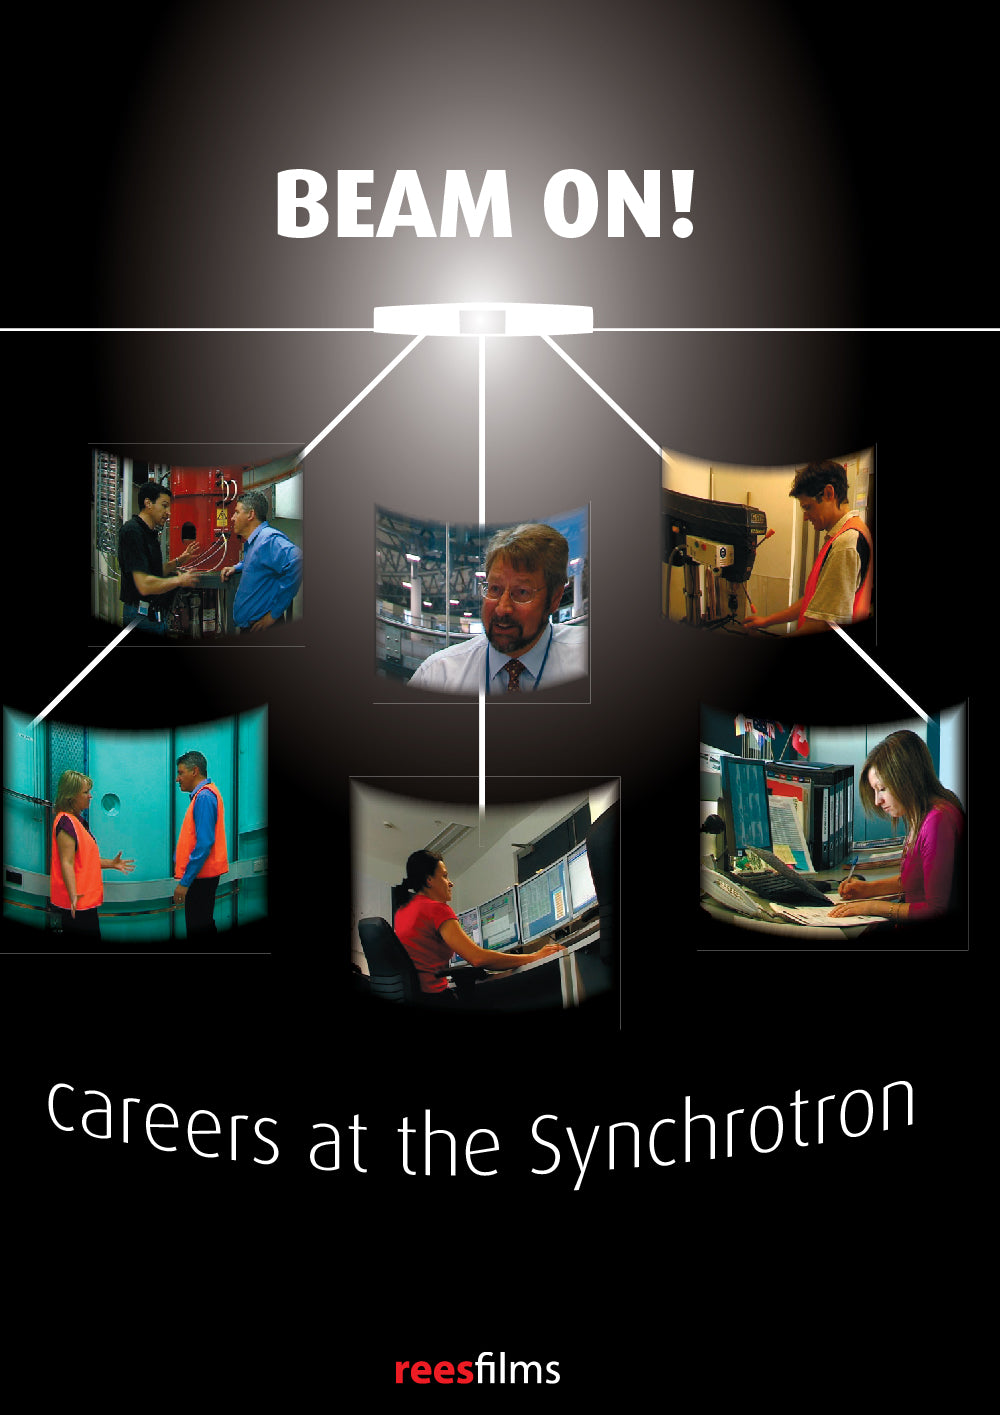 Beam On! Careers at the Synchrotron